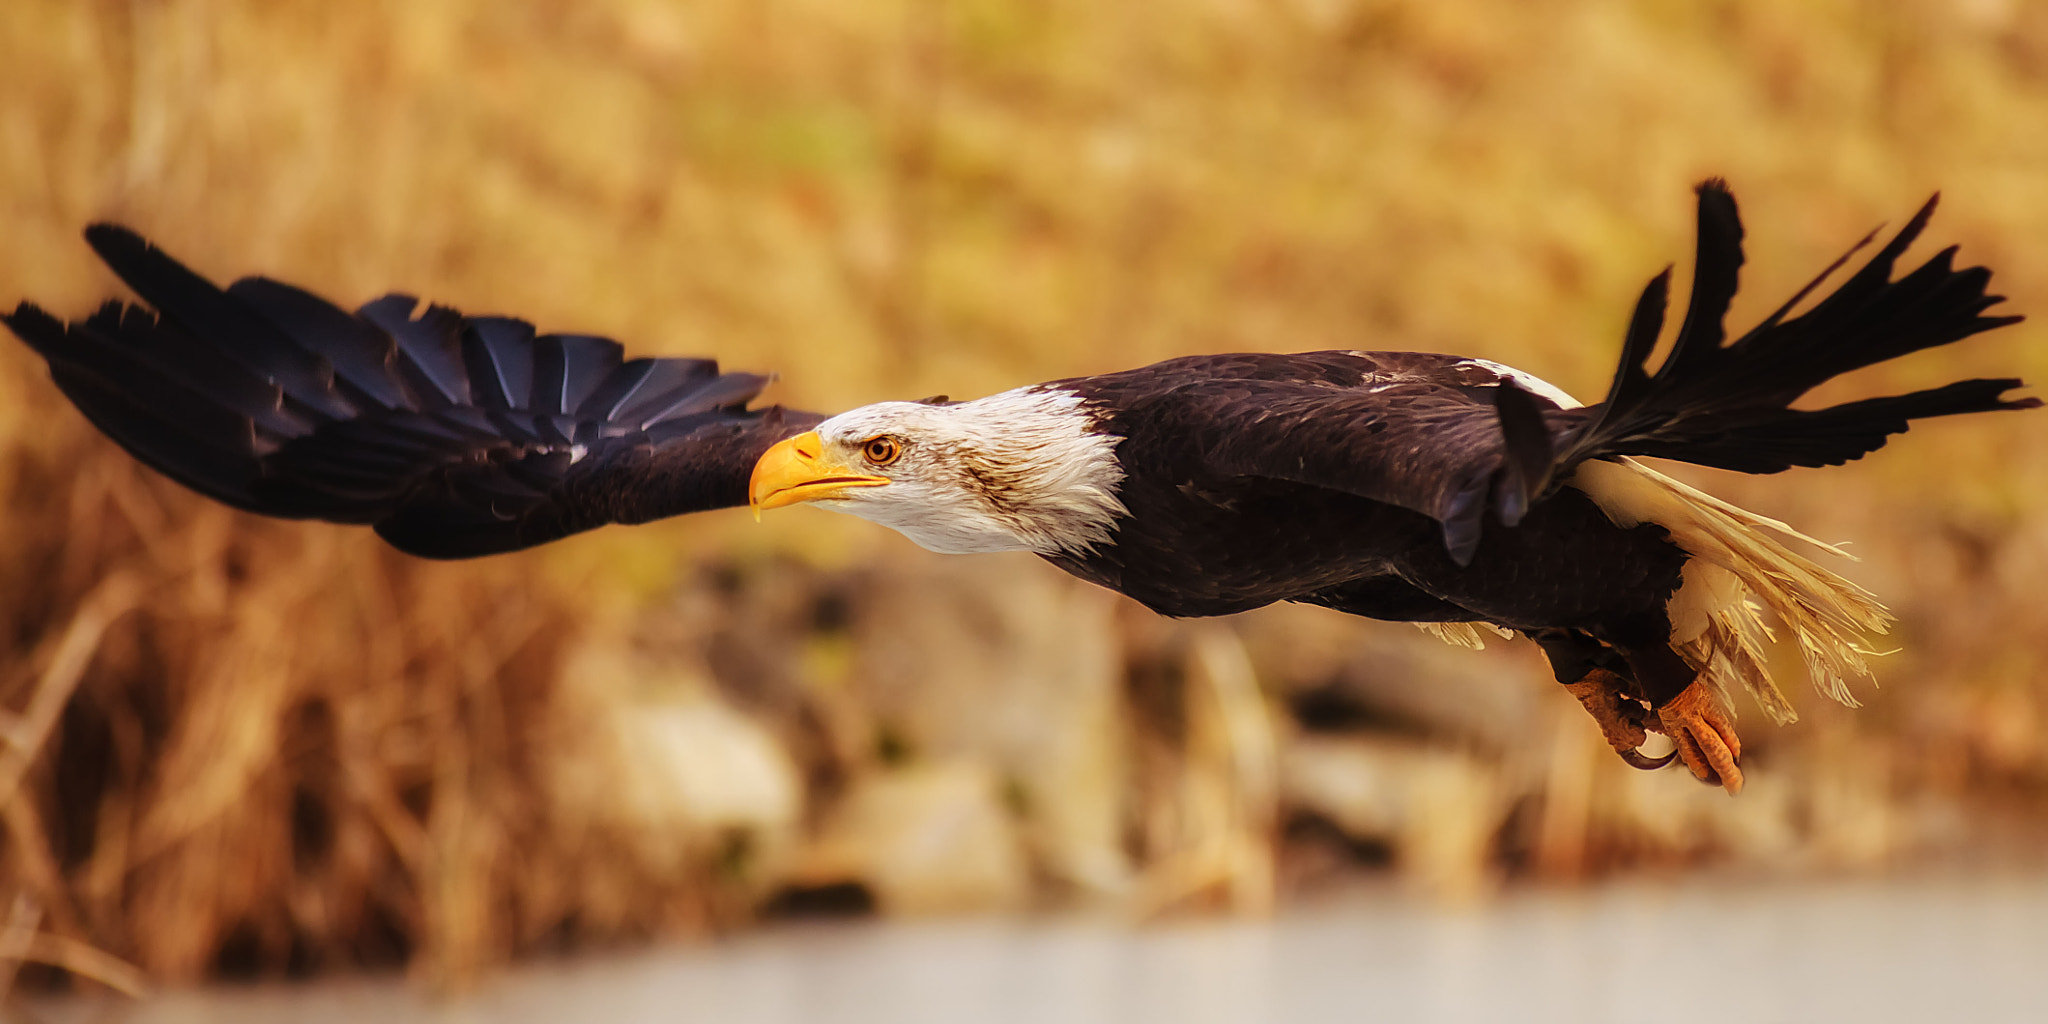 Photograph golden eagle by Stefan Betz on 500px